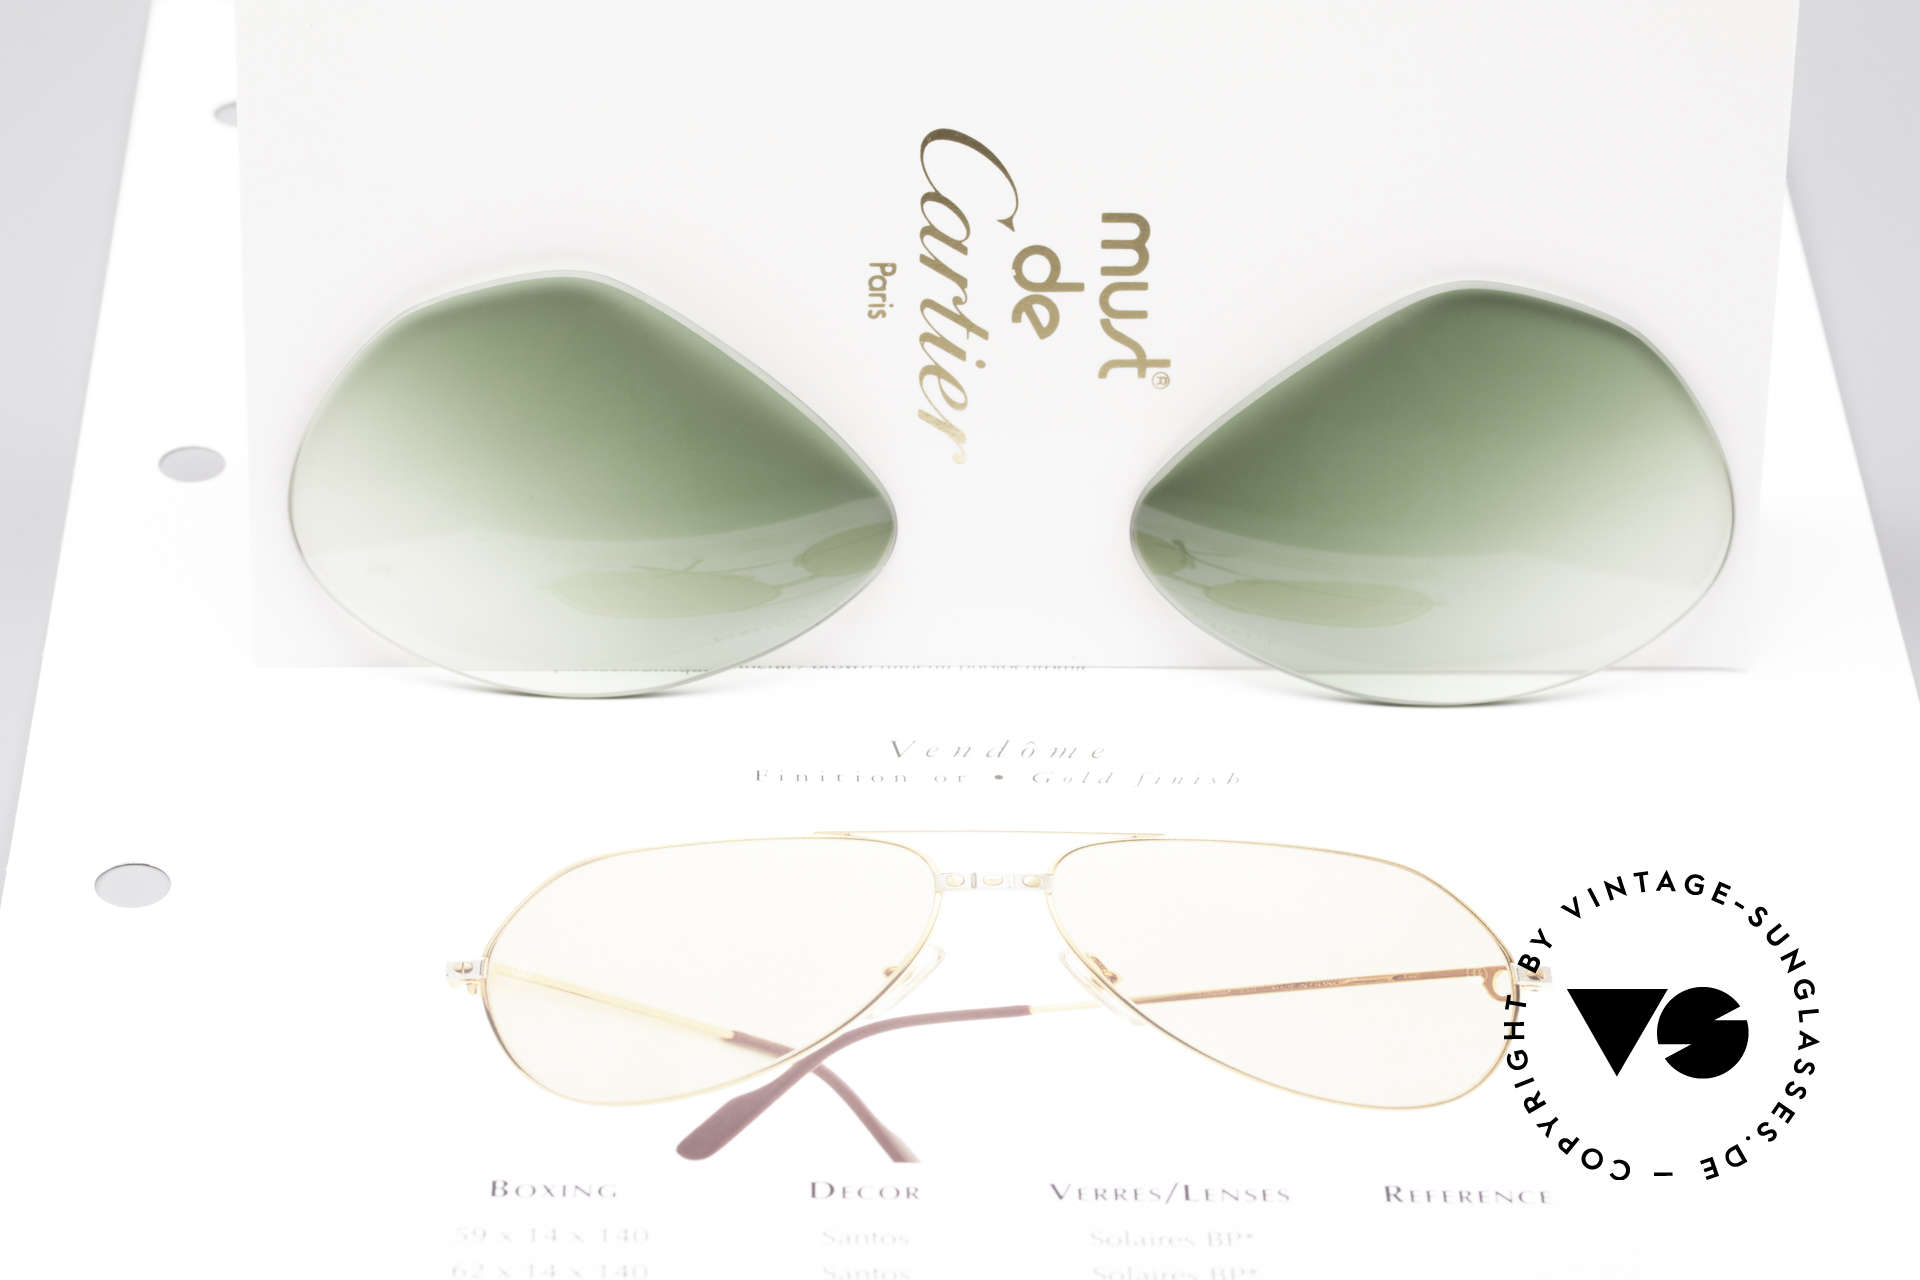 Cartier Vendome Lenses - M Sun Lenses Green Gradient, elegant green-gradient tint (wearable at day and night), Made for Men and Women